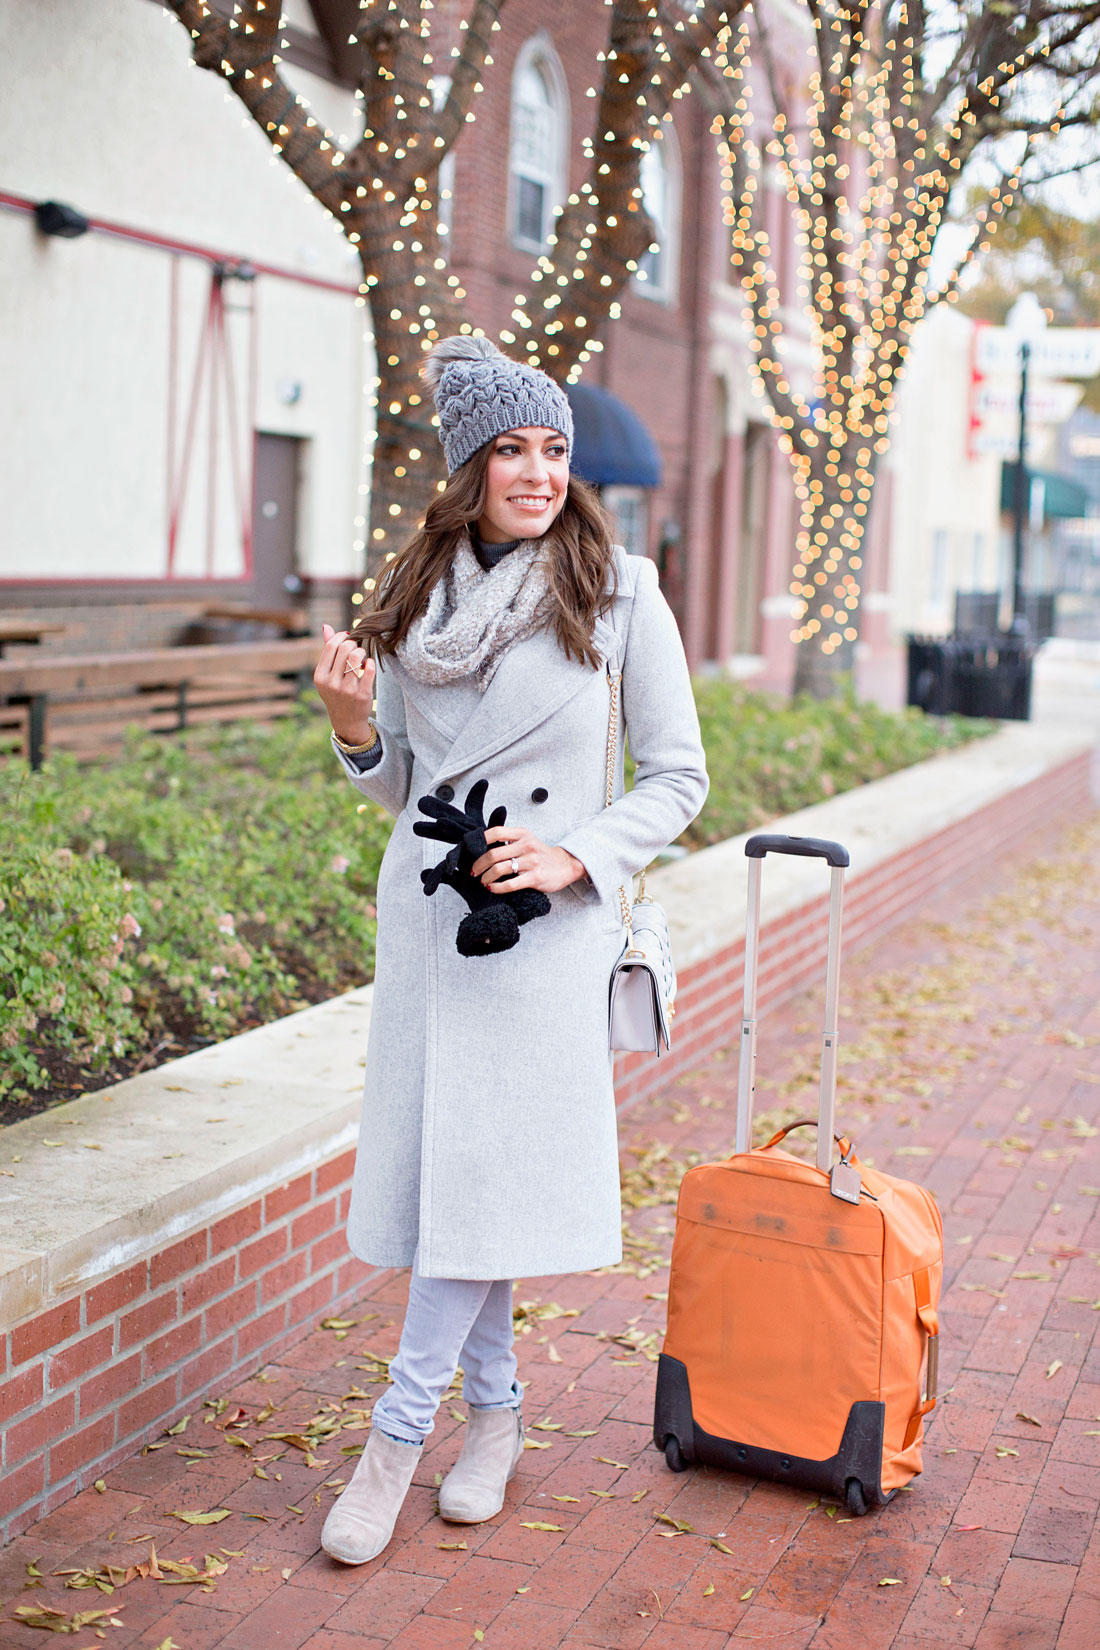 16f268e61 ... Amanda from A Glam Lifestyle blog shares what to wear when traveling  including a Club Monaco ...